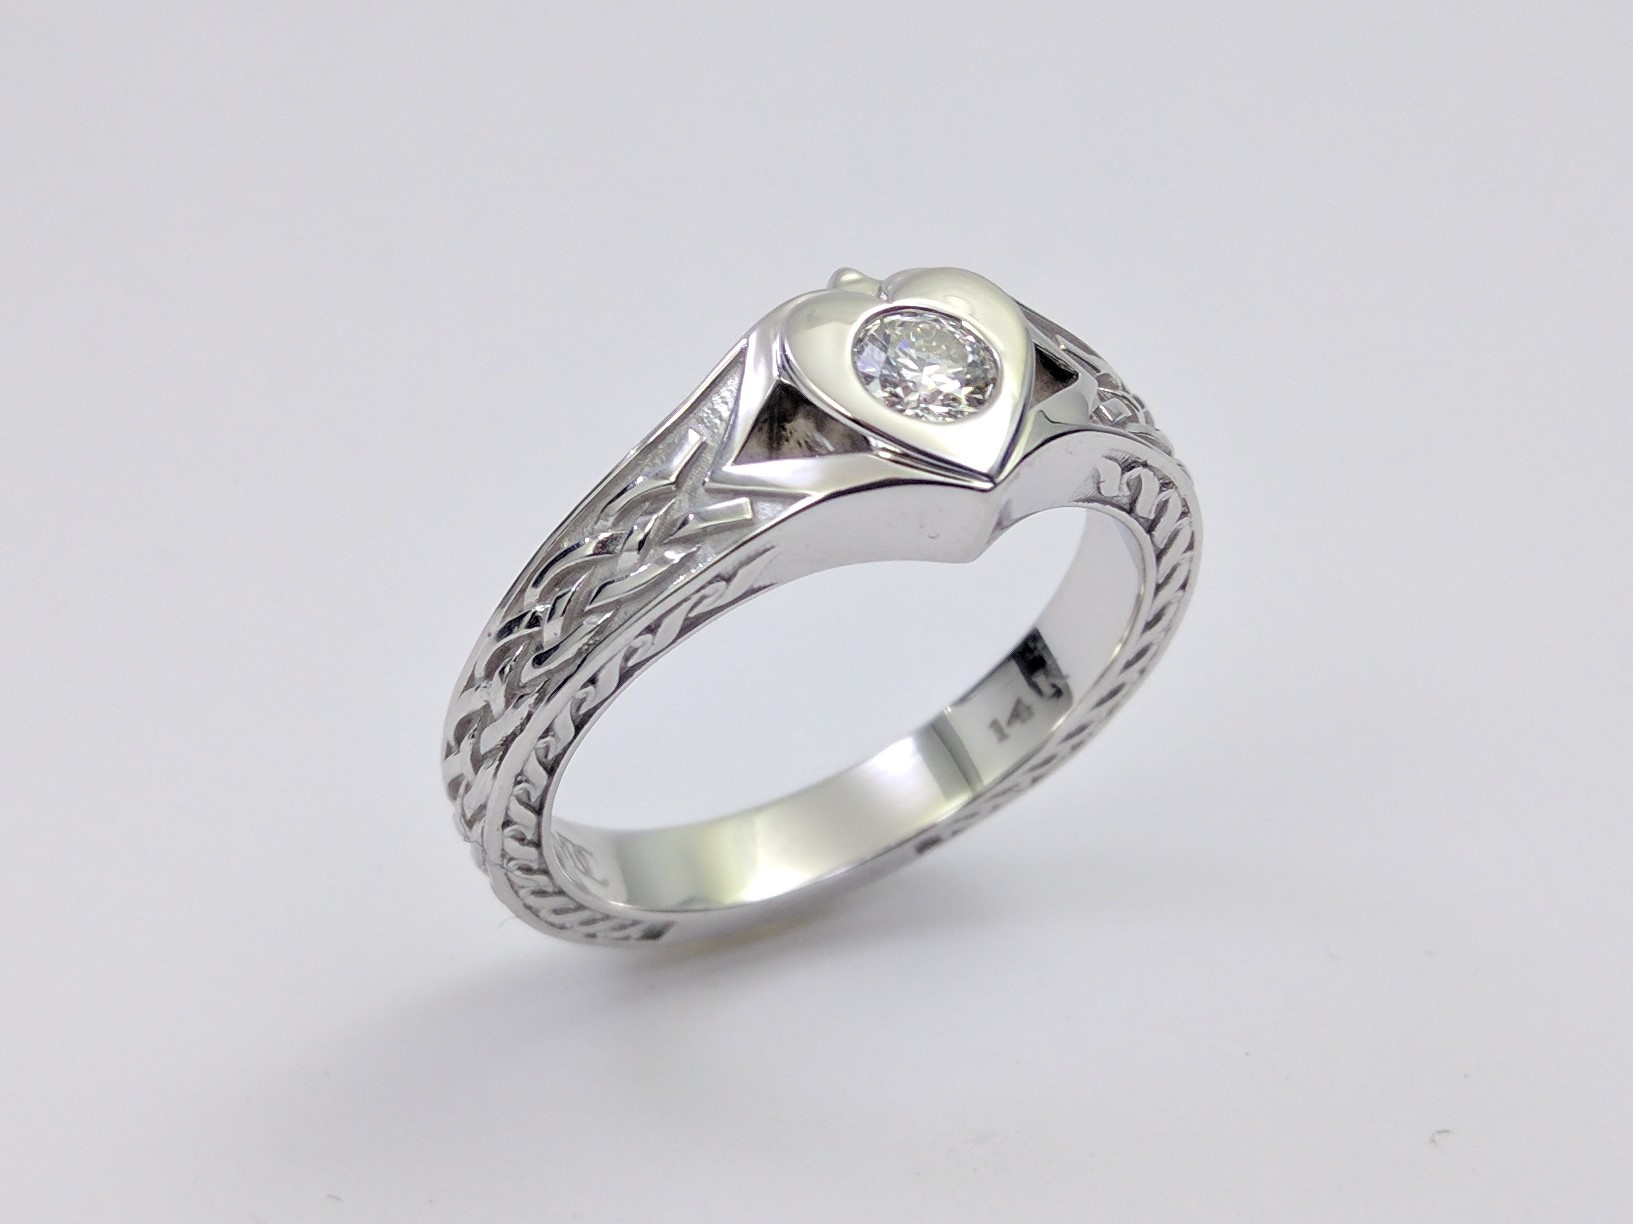 nyc diamonds engagementringsre rings ring mdc engraved cfm gaelic engagement diamond from celtic claddagh